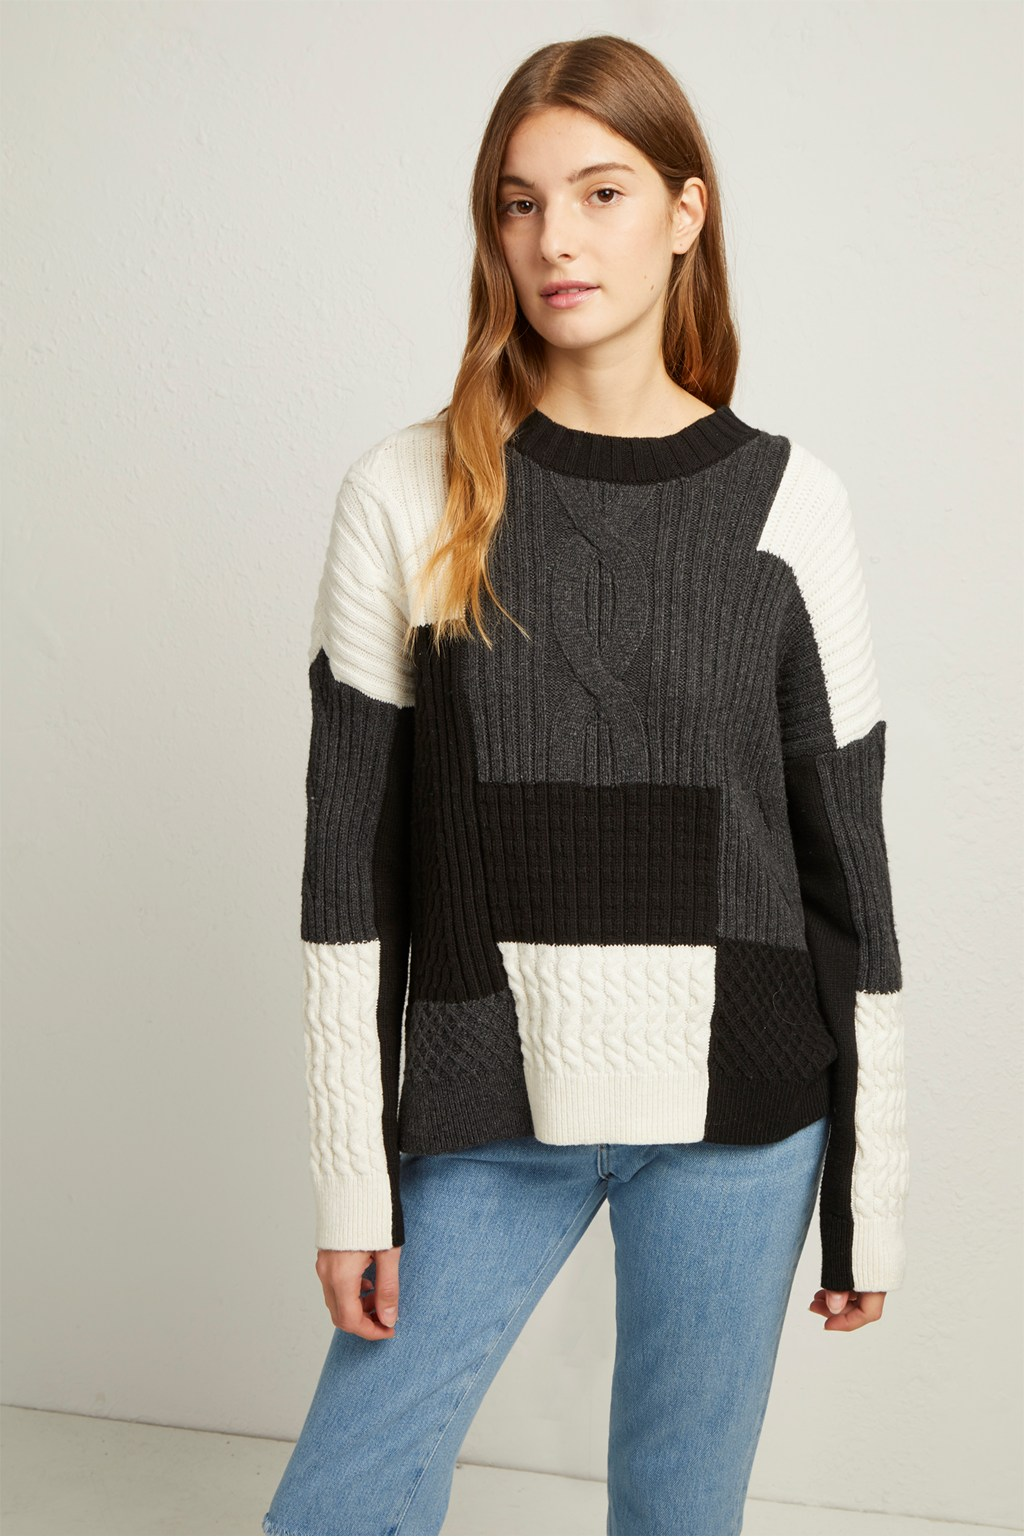 70997dab876afe Amie Patch Knits Cable Jumper. loading images.